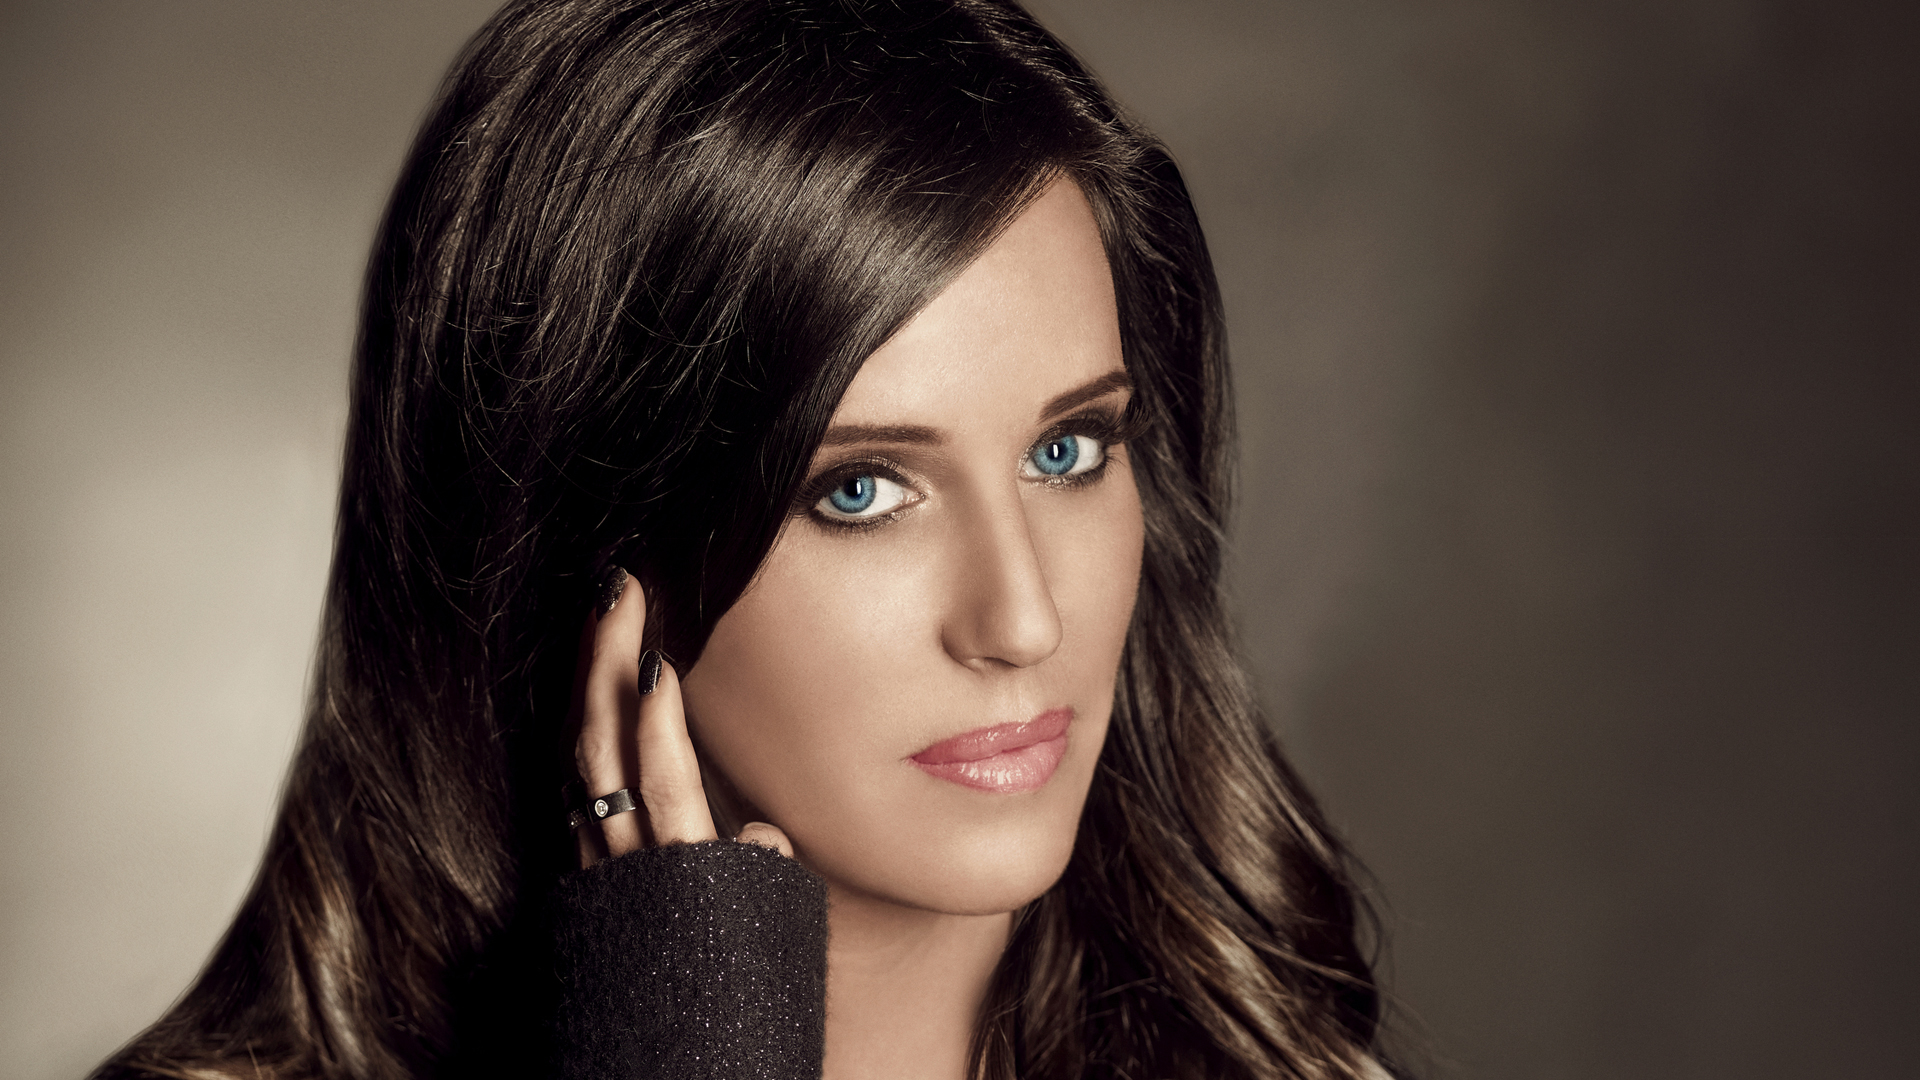 millionaire matchmaker patti dating advice Patti stanger's advice 107 likes 2 talking about this bravo tv millionaire matchmaker patti stanger's advice on relationships, dating and marriage.